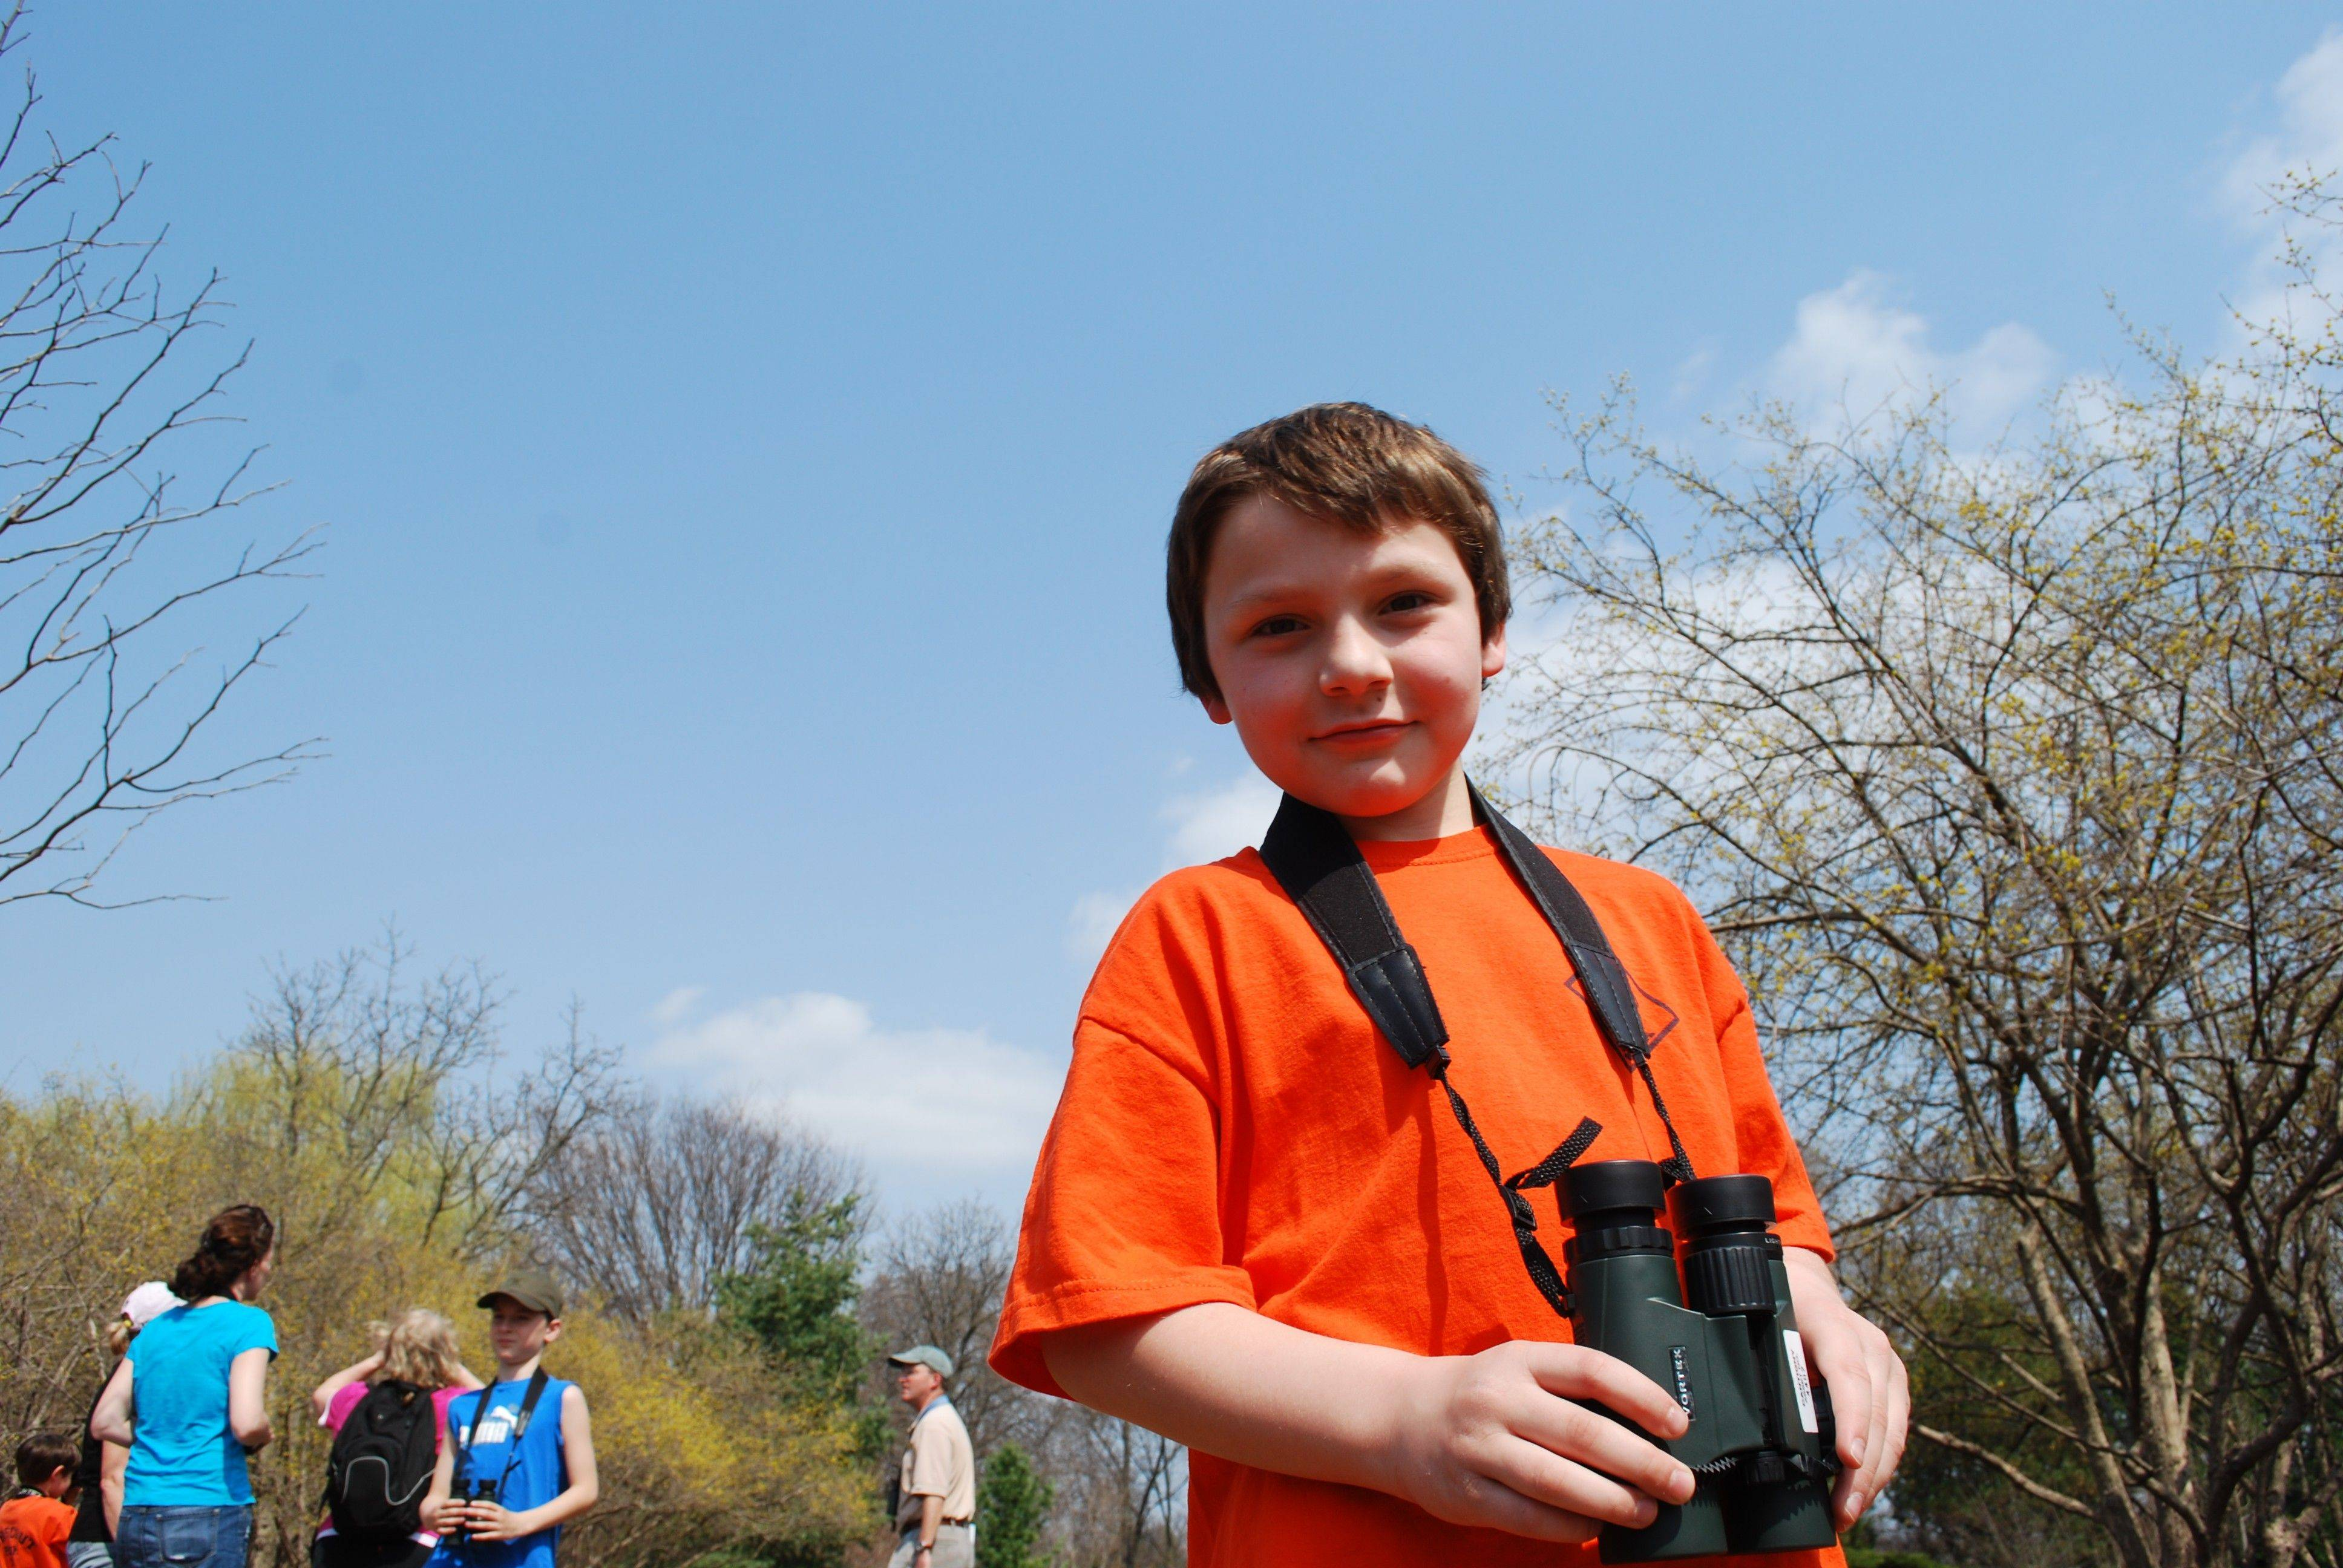 Gabriel Alvarez from Cub Scout Pack 151 gets ready to hit the trail during a bird-watching expedition at Cantigny Park.